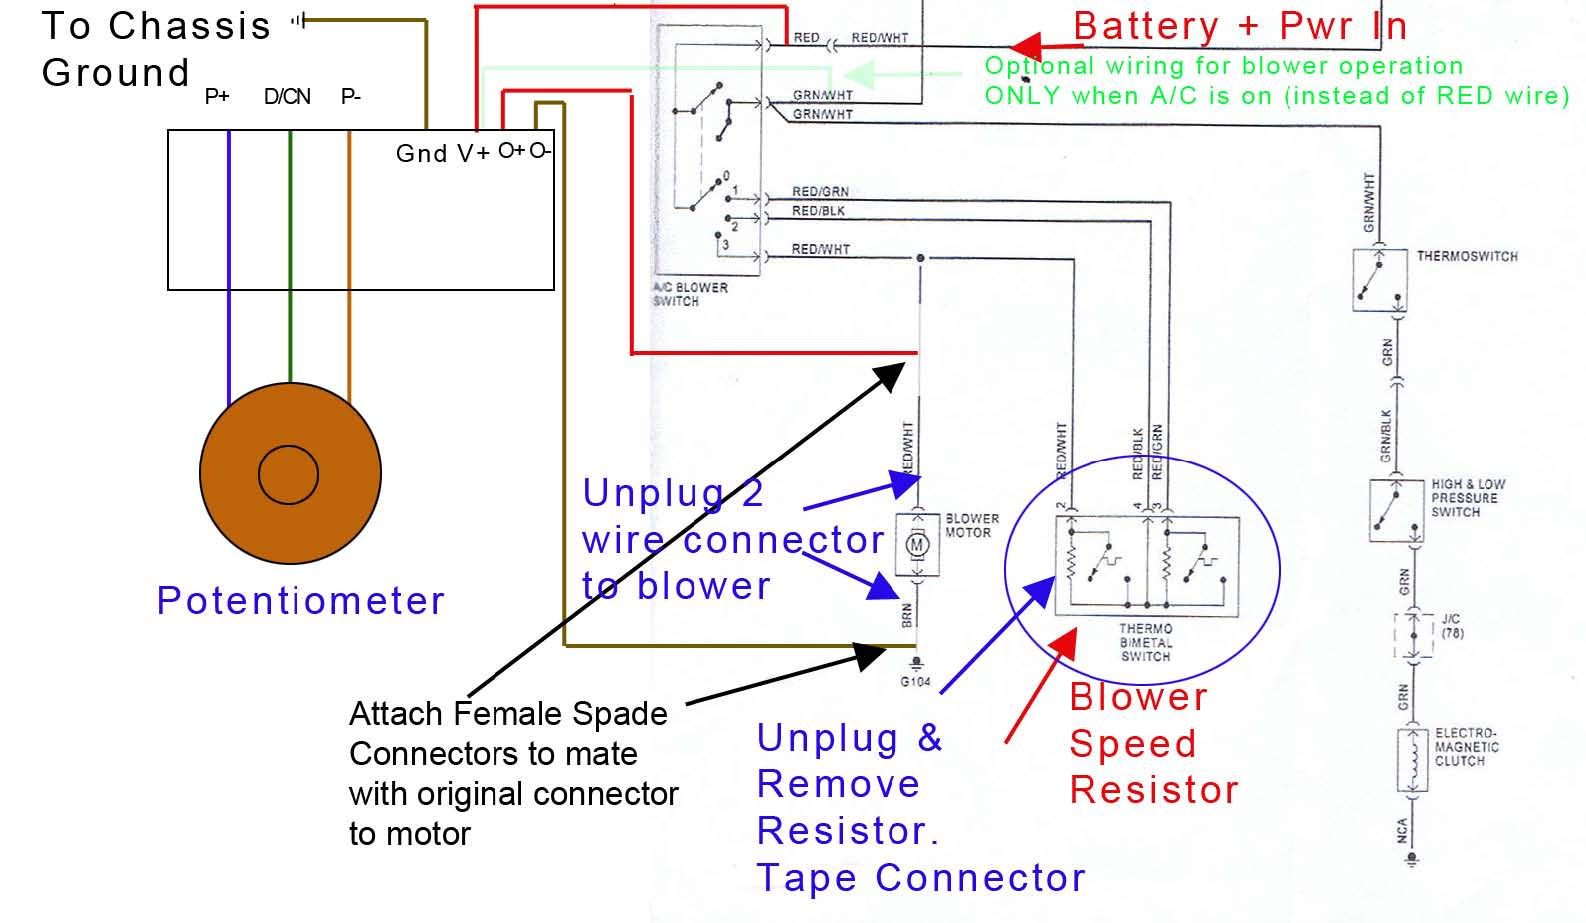 porsche ac wiring diagram with 911 Ac Switch on Central Air Conditioner Wiring Diagram in addition Heater Control Valve Location 2002 Gmc Envoy as well 562667 1968 911l Wiring Diagram Does Anyone Have One in addition 911 ac switch additionally 1967 1972 Chevrolet Truck Instrument.